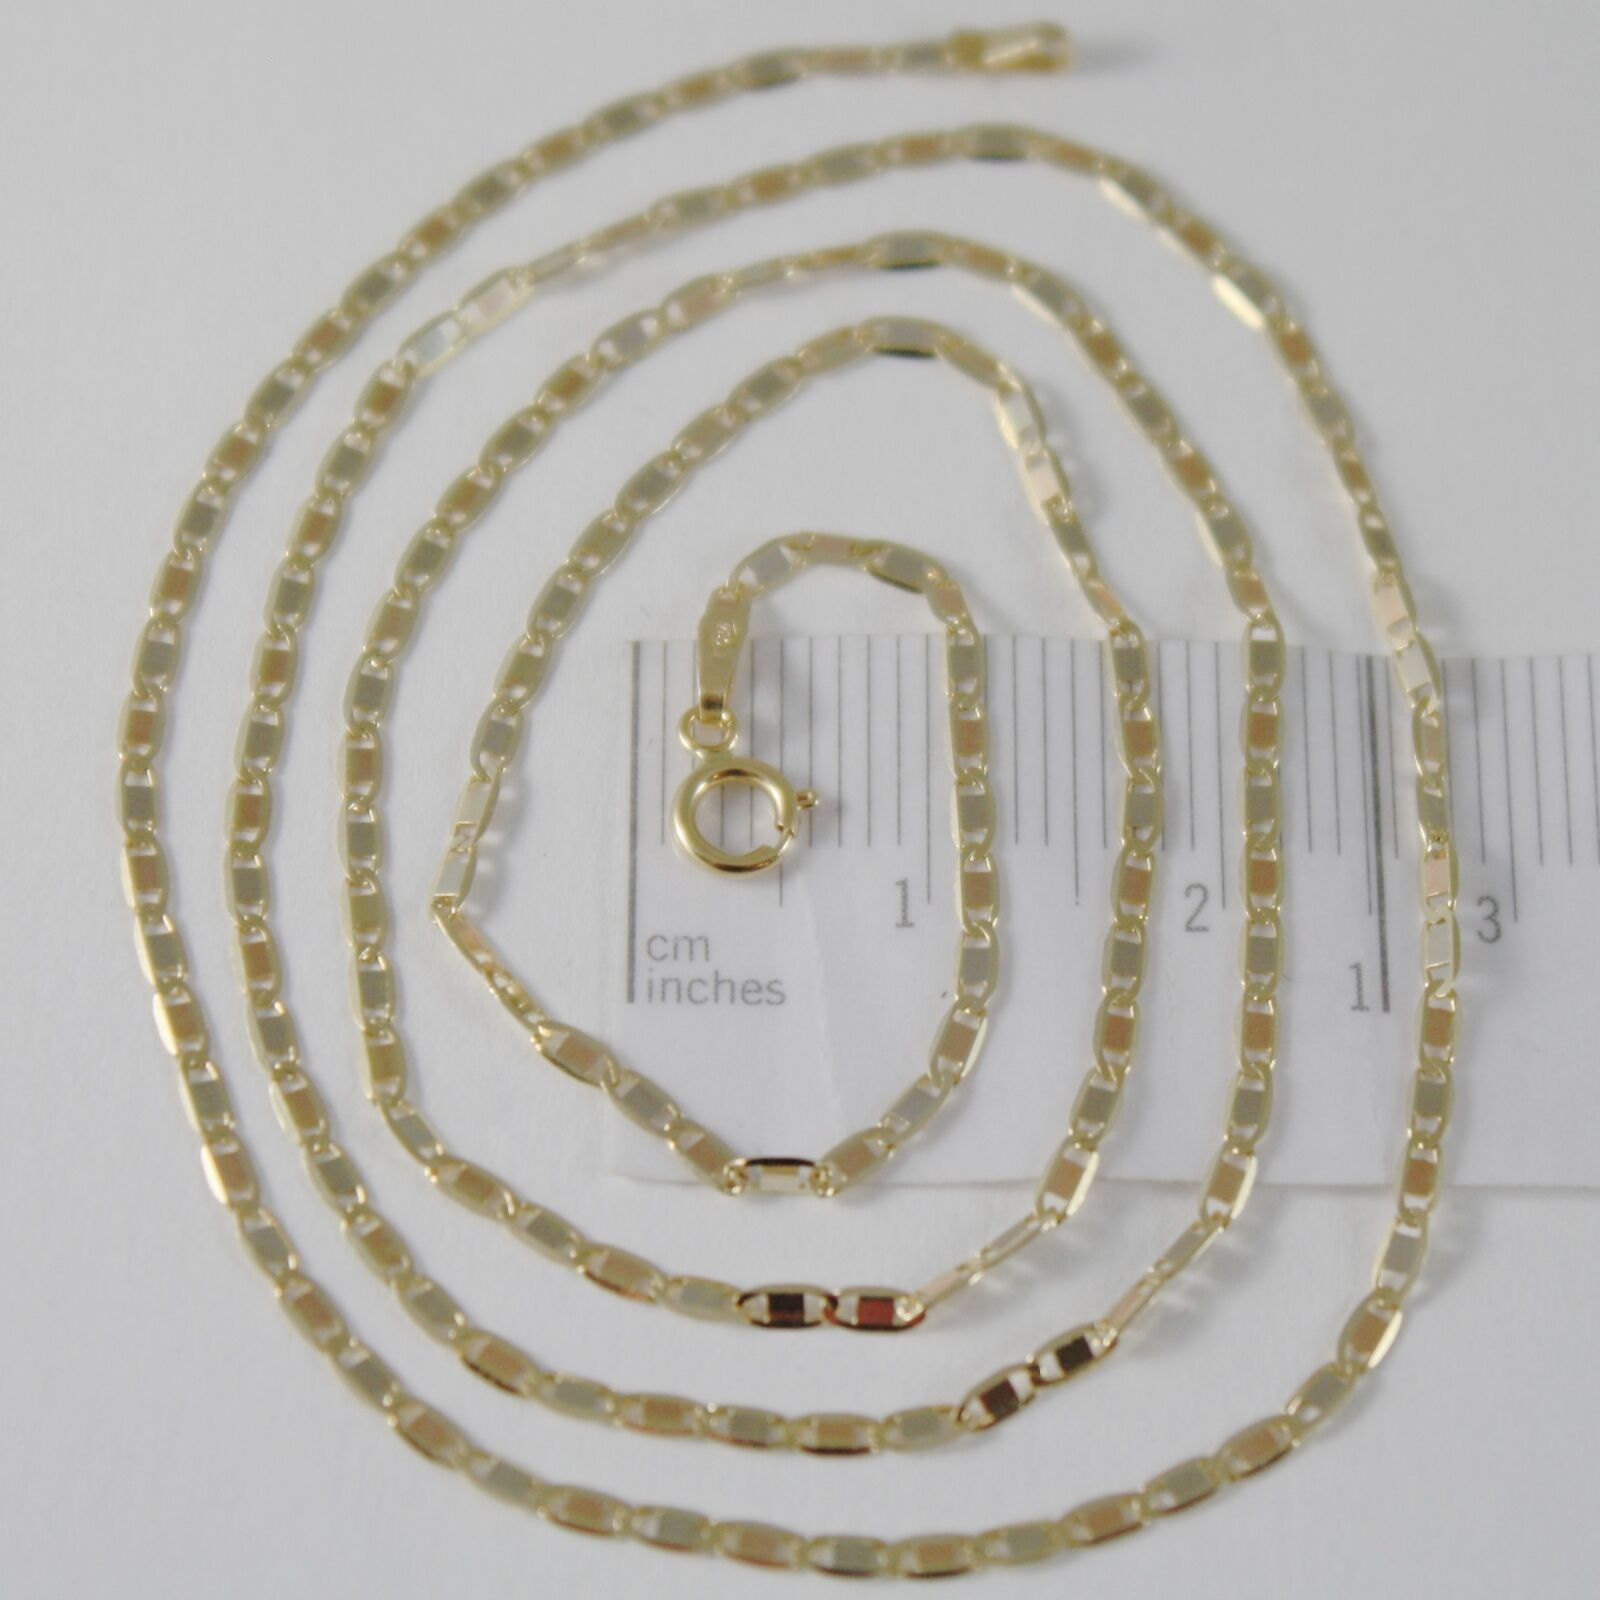 18K YELLOW WHITE ROSE GOLD FLAT BRIGHT OVAL CHAIN 16 INCHES, 2 MM MADE IN ITALY